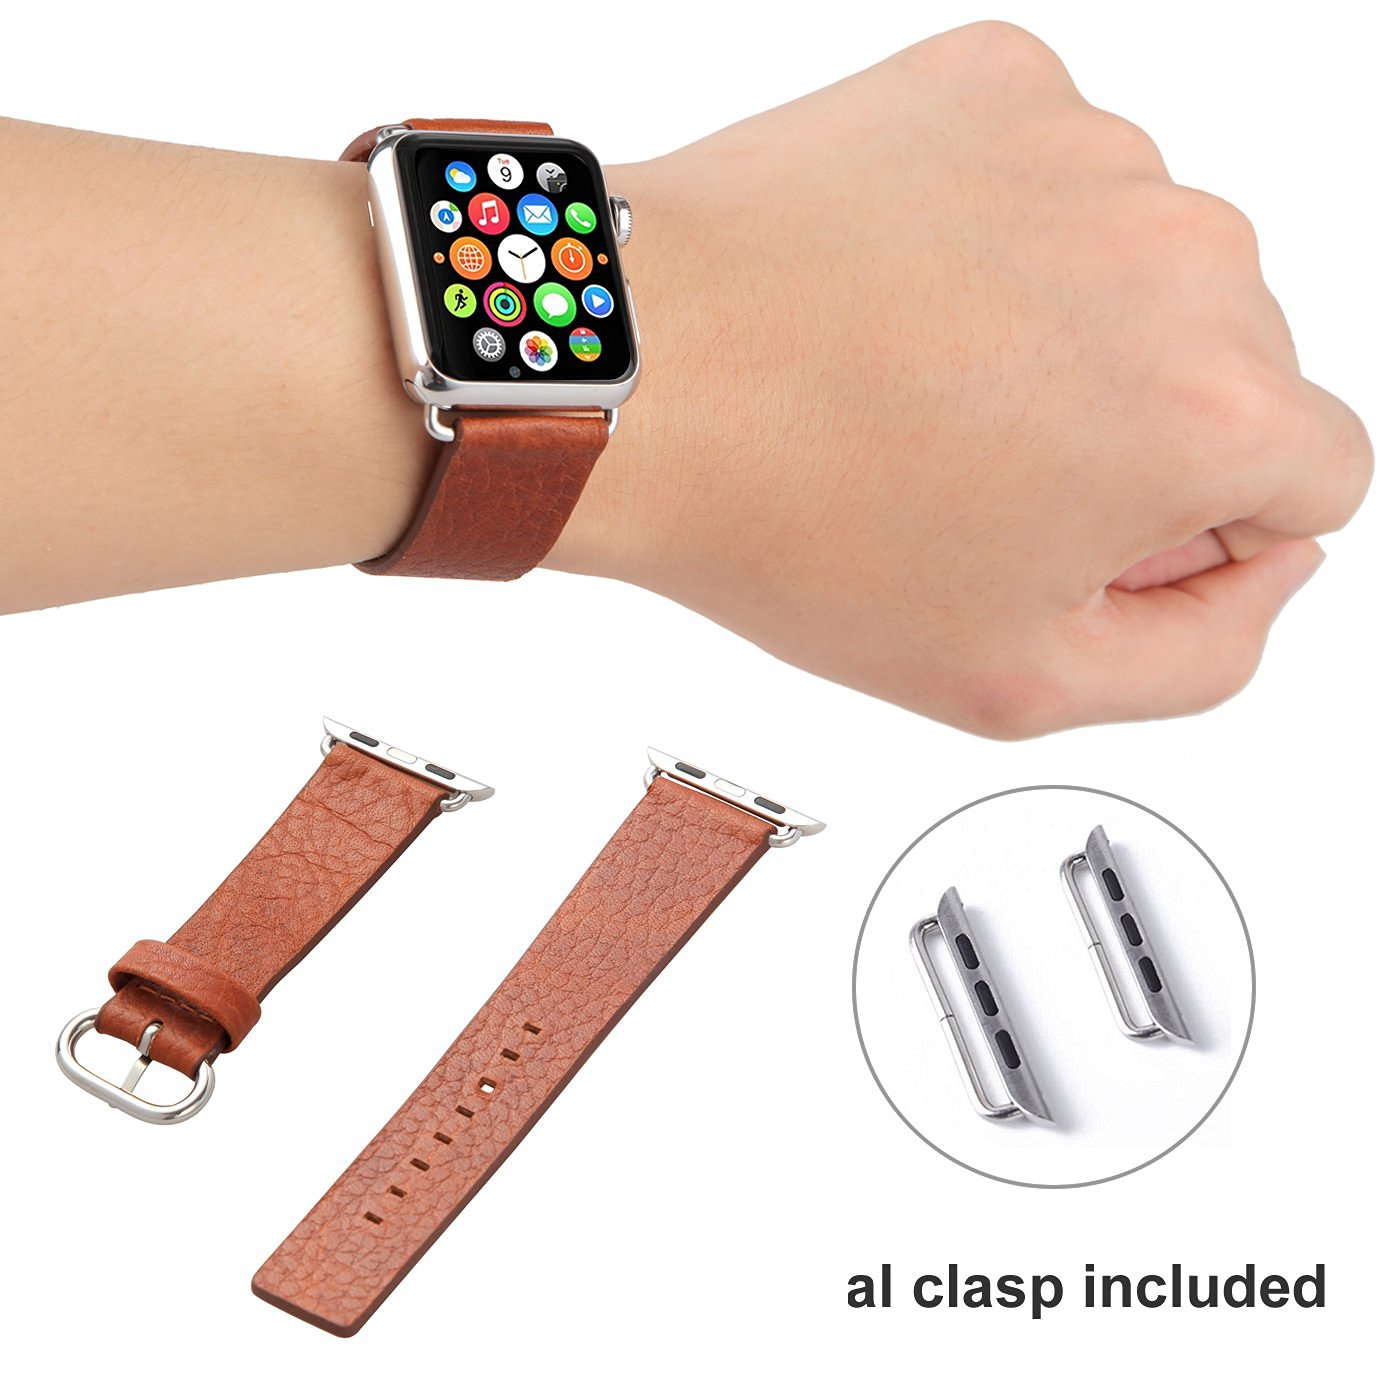 Apple Watch Band, iwatch Band w/ Metal Clasp, Plusinno 38mm 42mm Genuine Leather Apple Watch Strap Wrist Band Replacement Watch Band with Metal Clasp for Apple Watch 42mm Sport Edition (42mm-Brown)